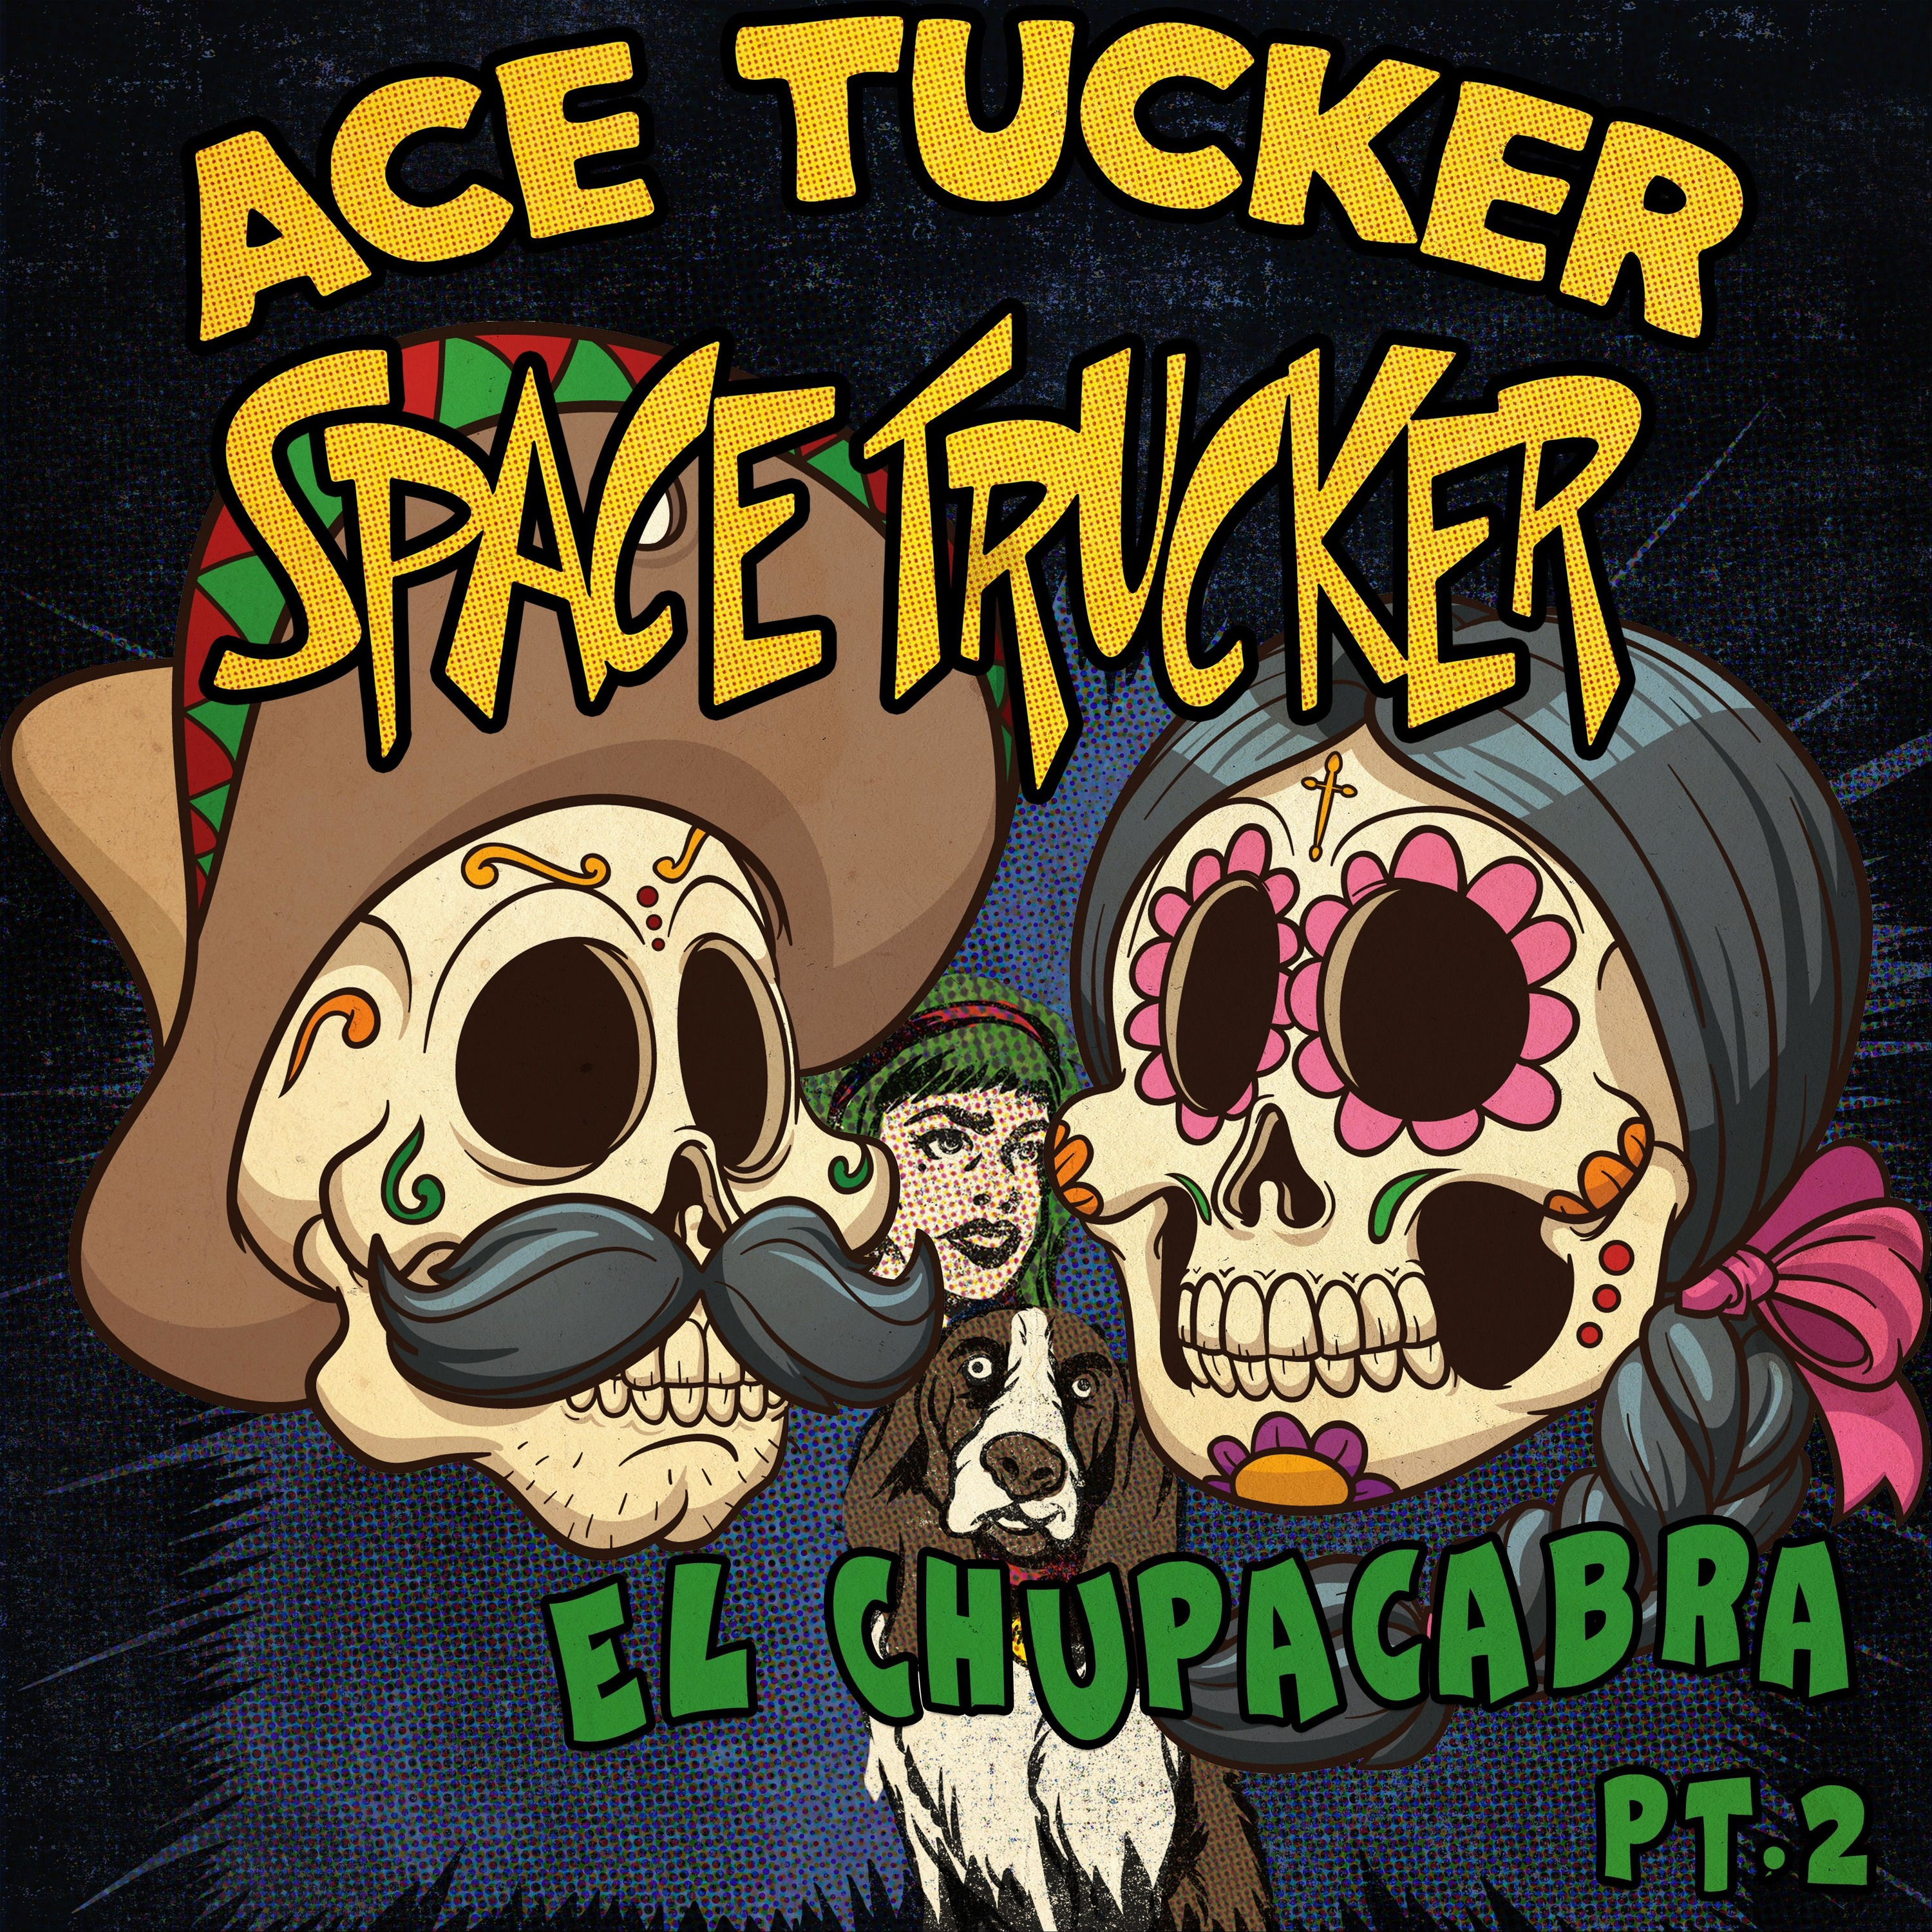 Ace Tucker Space Trucker